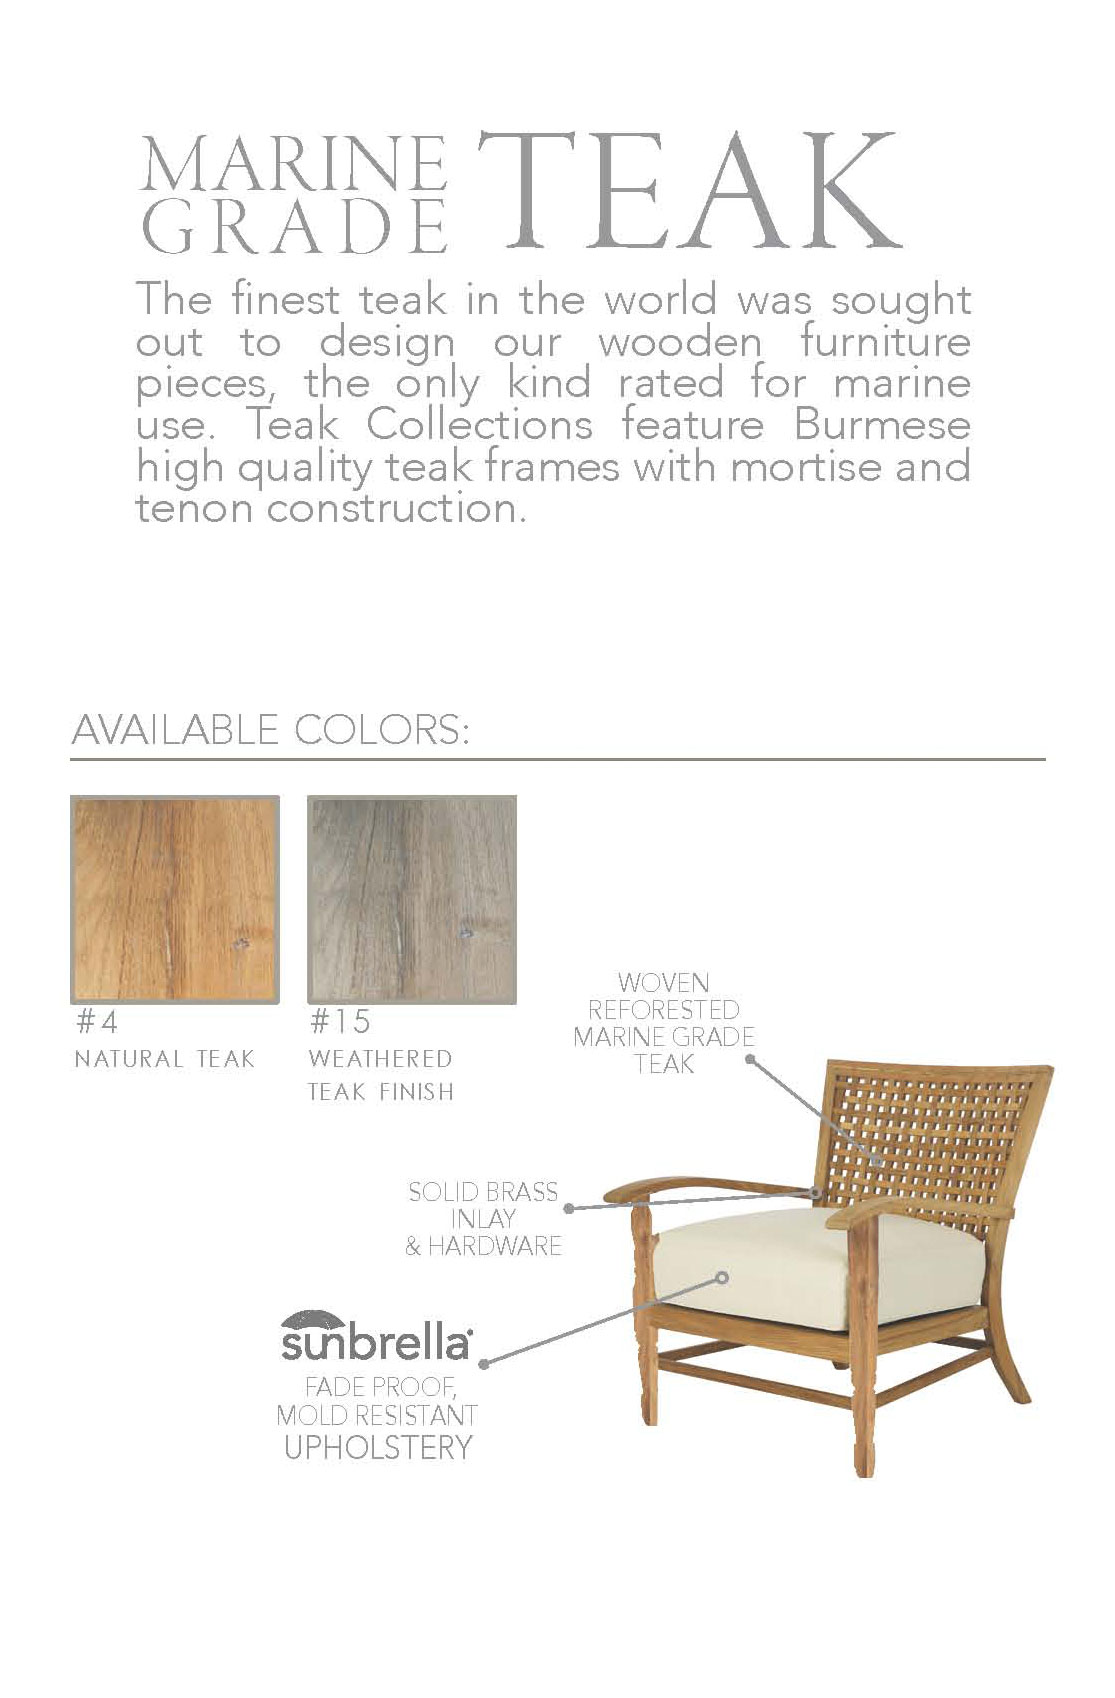 We Hope That You Will Enjoy Using Your Summer Classics Teak Collections As  Much As We Enjoyed Creating Them For You.